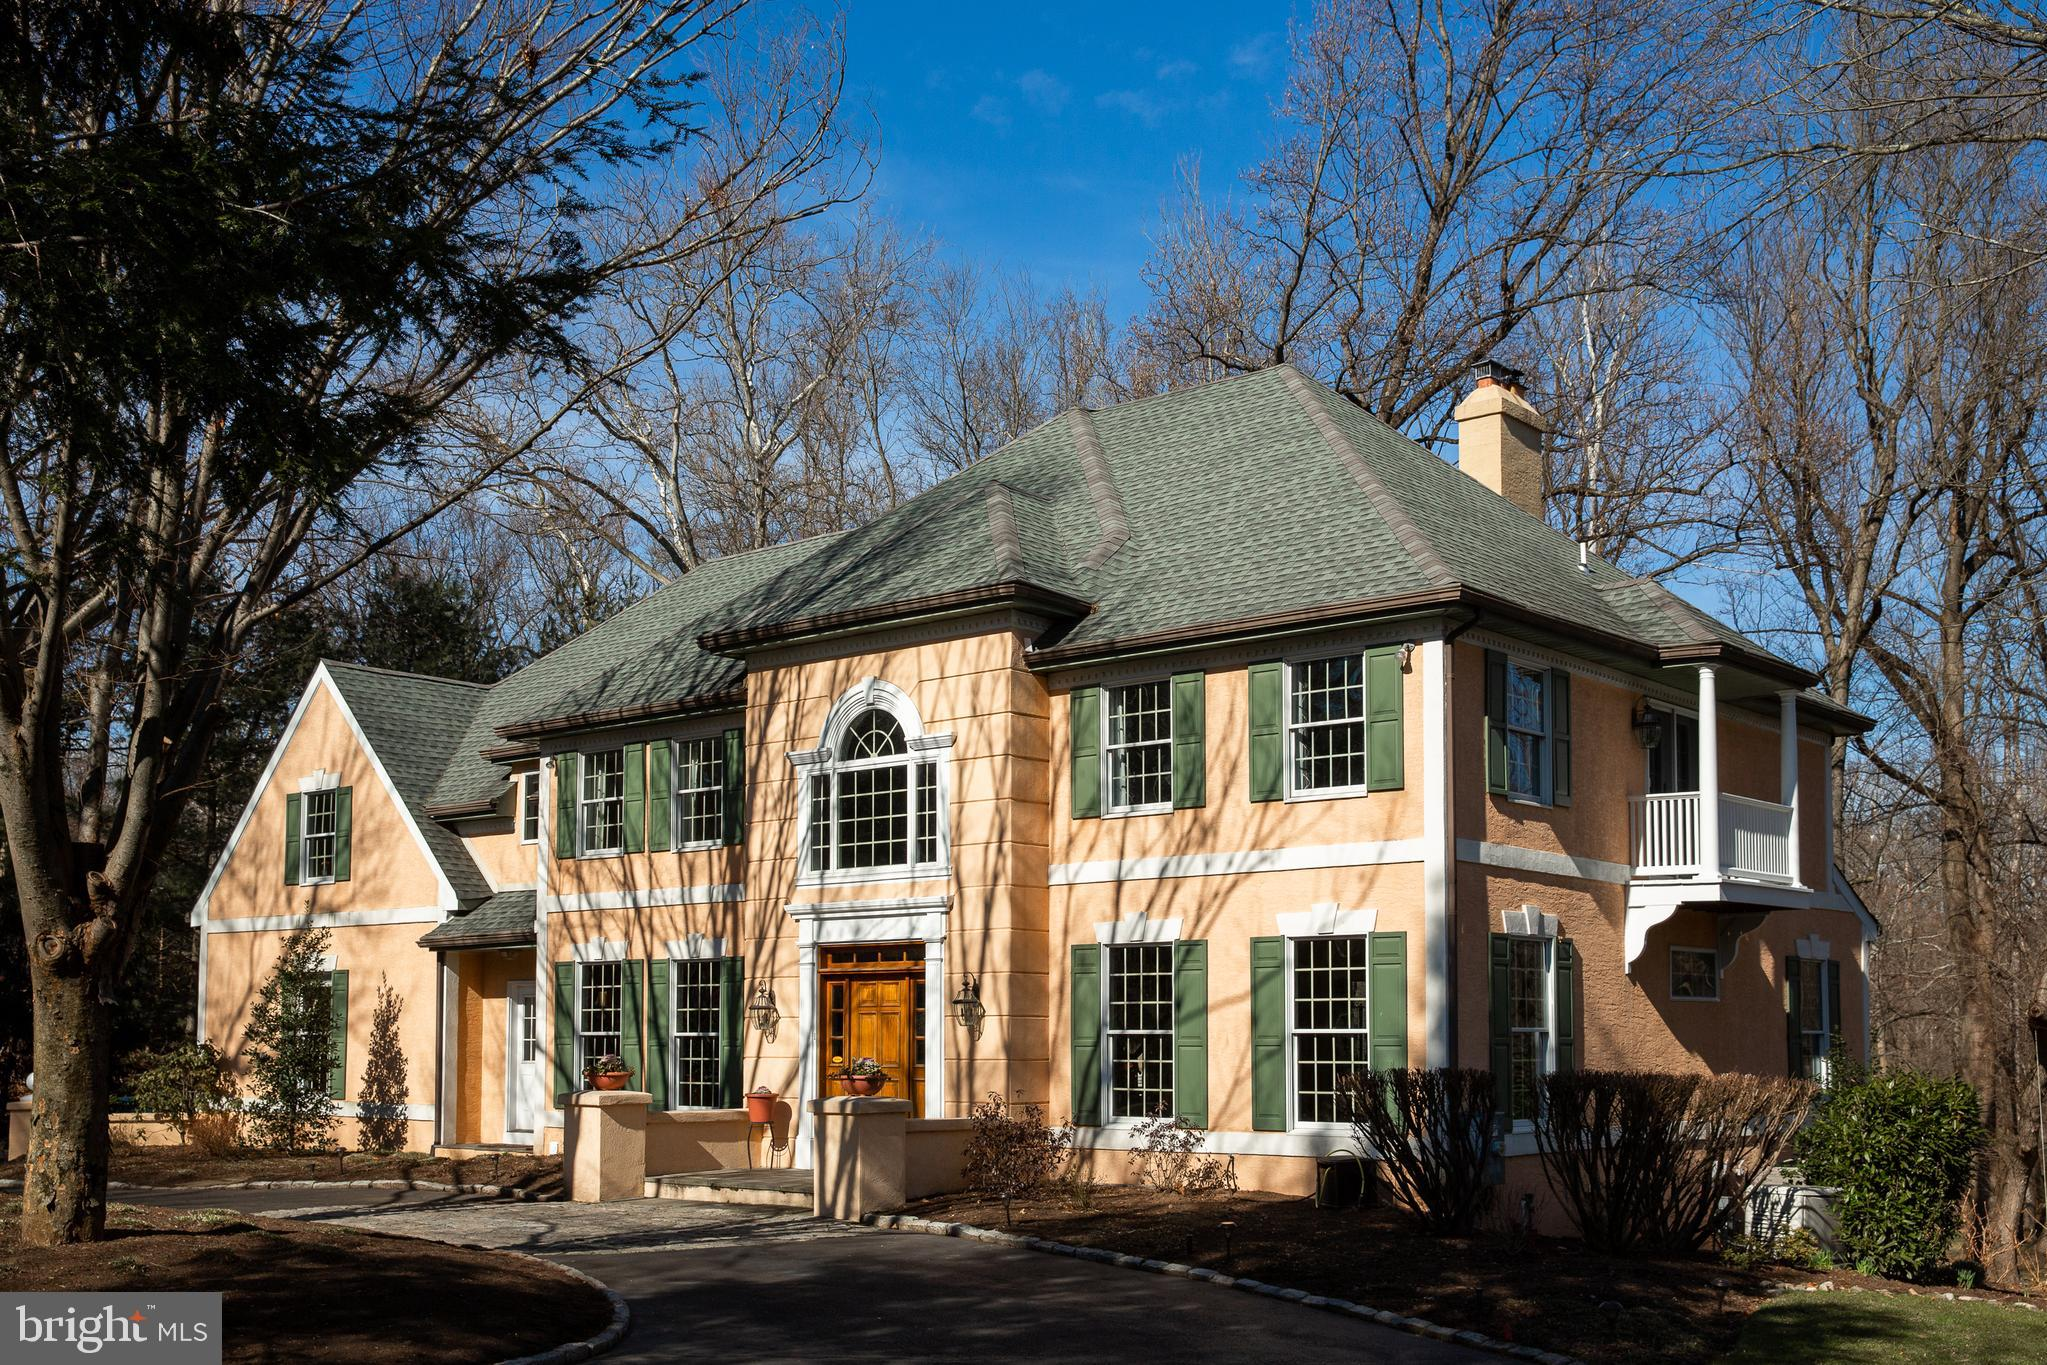 1584 River Road, New Hope, PA 18938